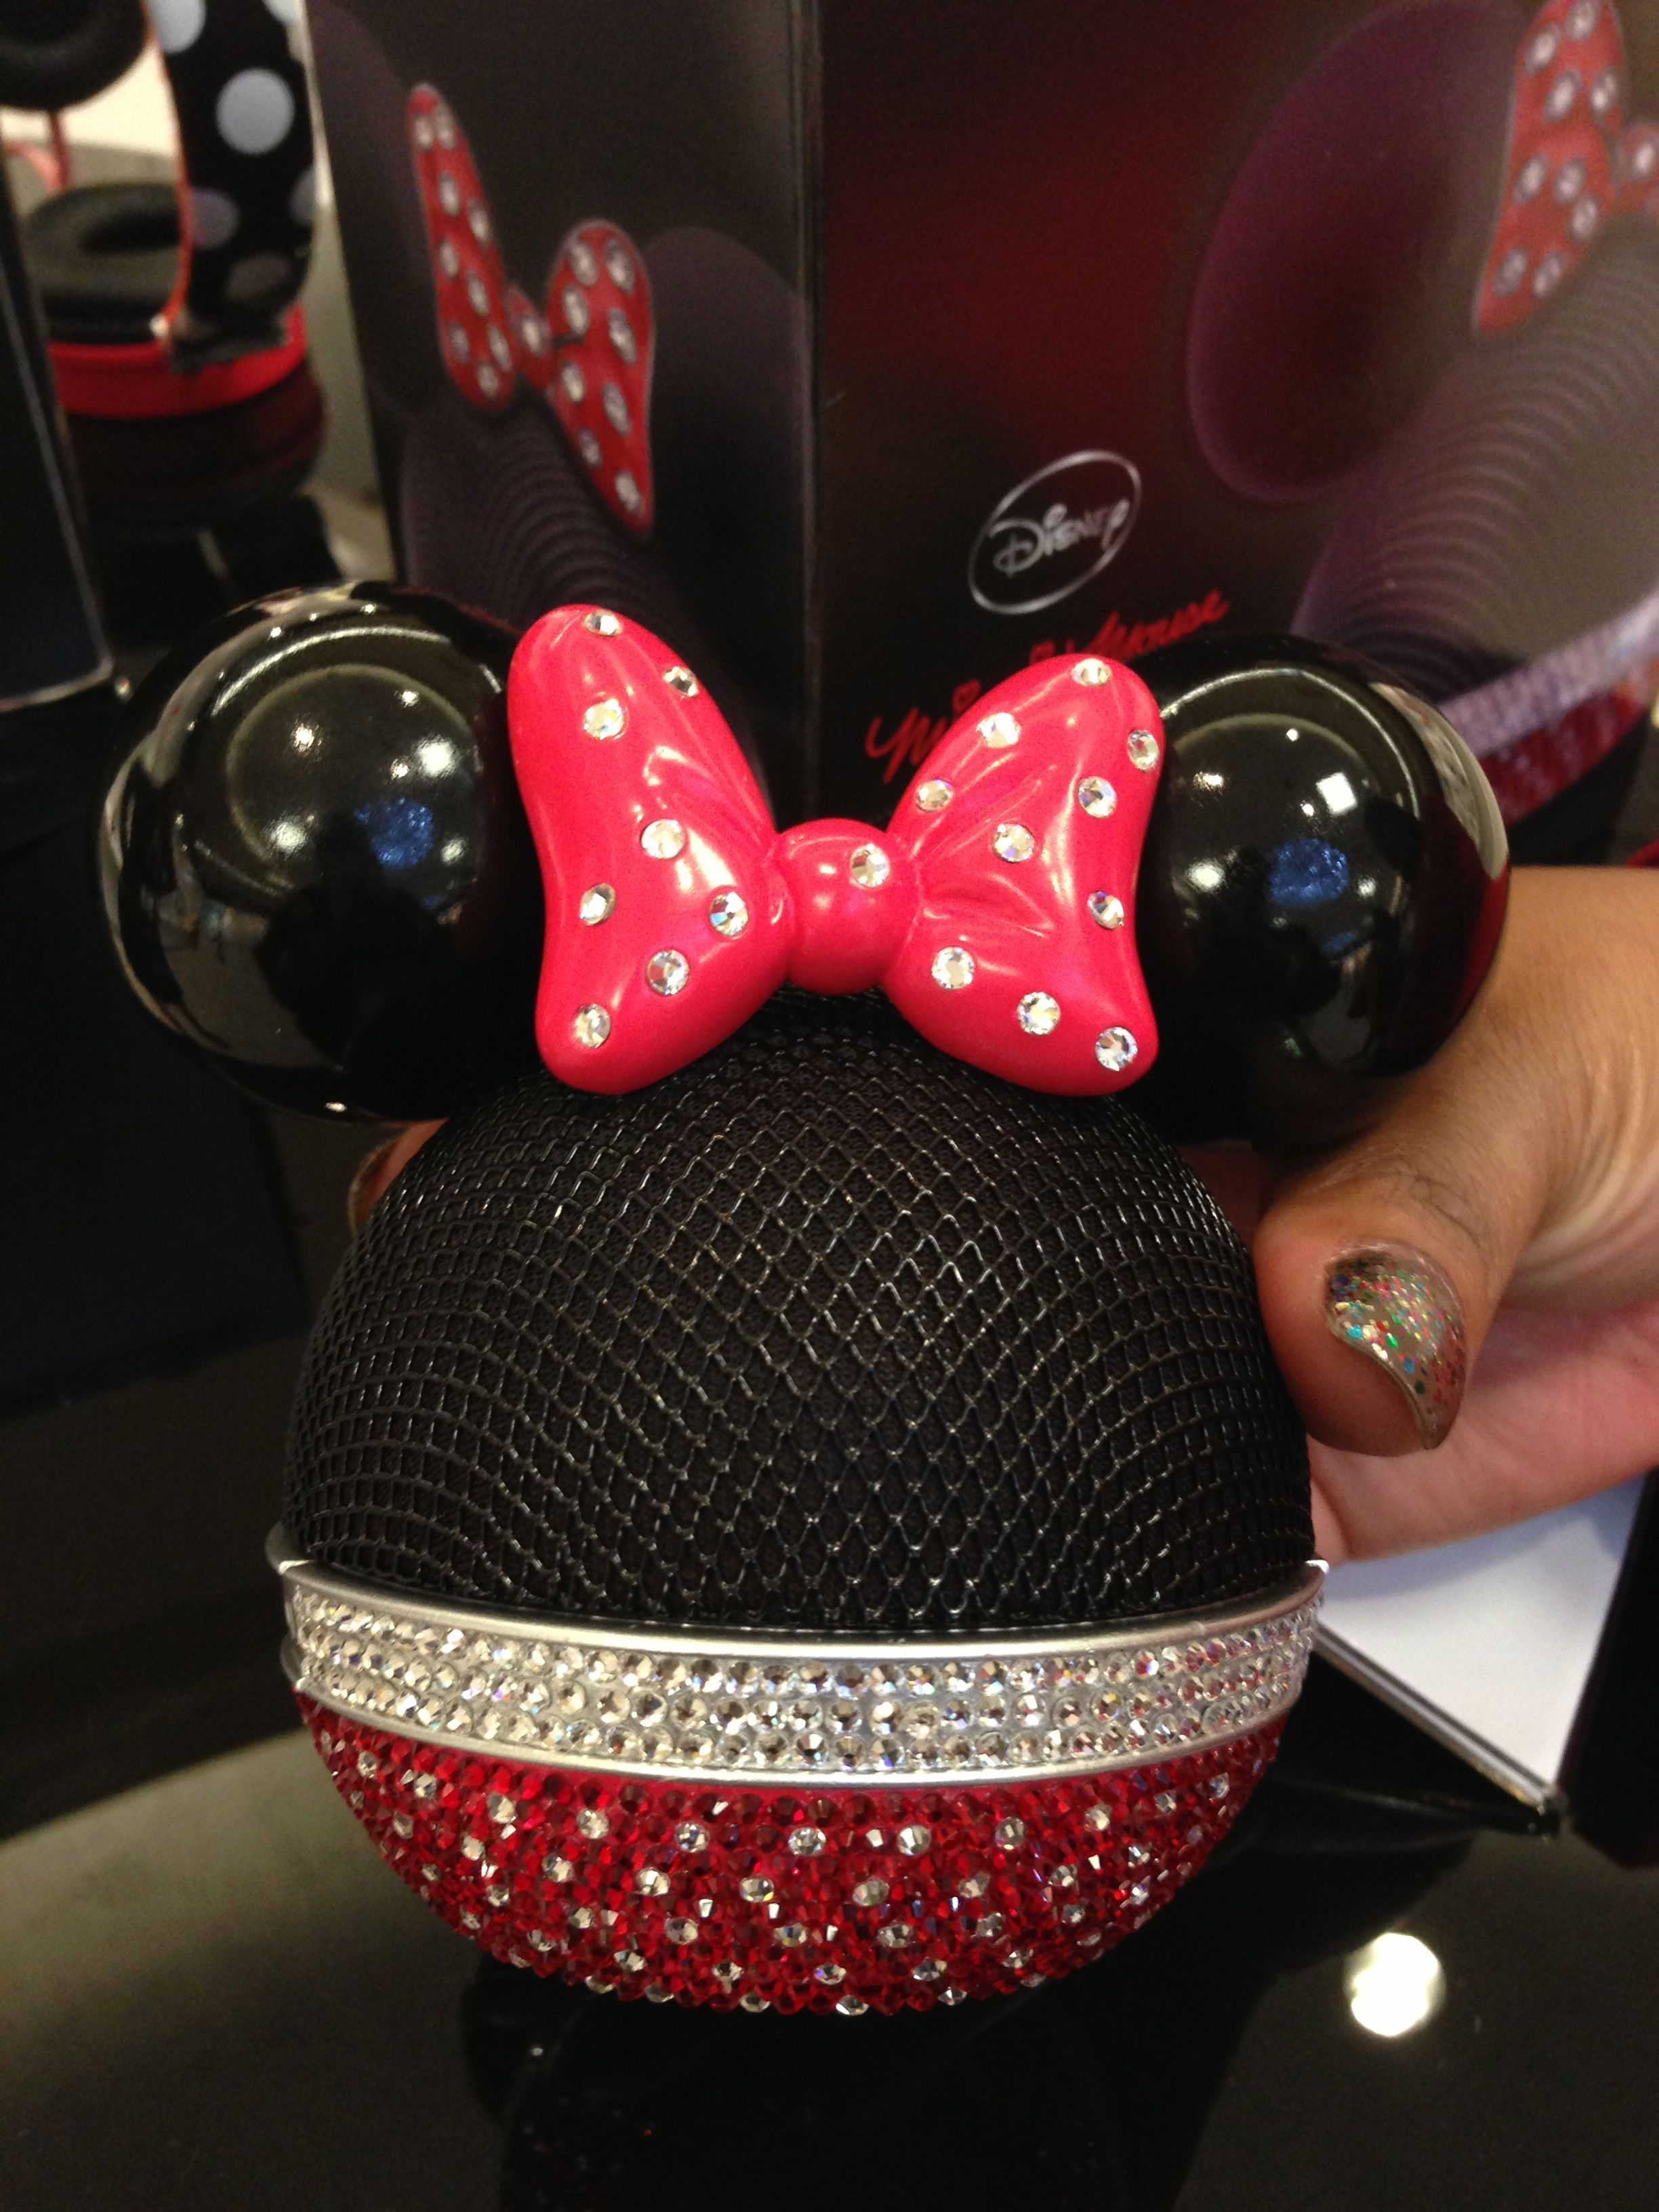 Mickey Mouse Bluetooth Speaker Ihome Minnie Speakers Wdw Store Disney Icon Pin Circuit Board